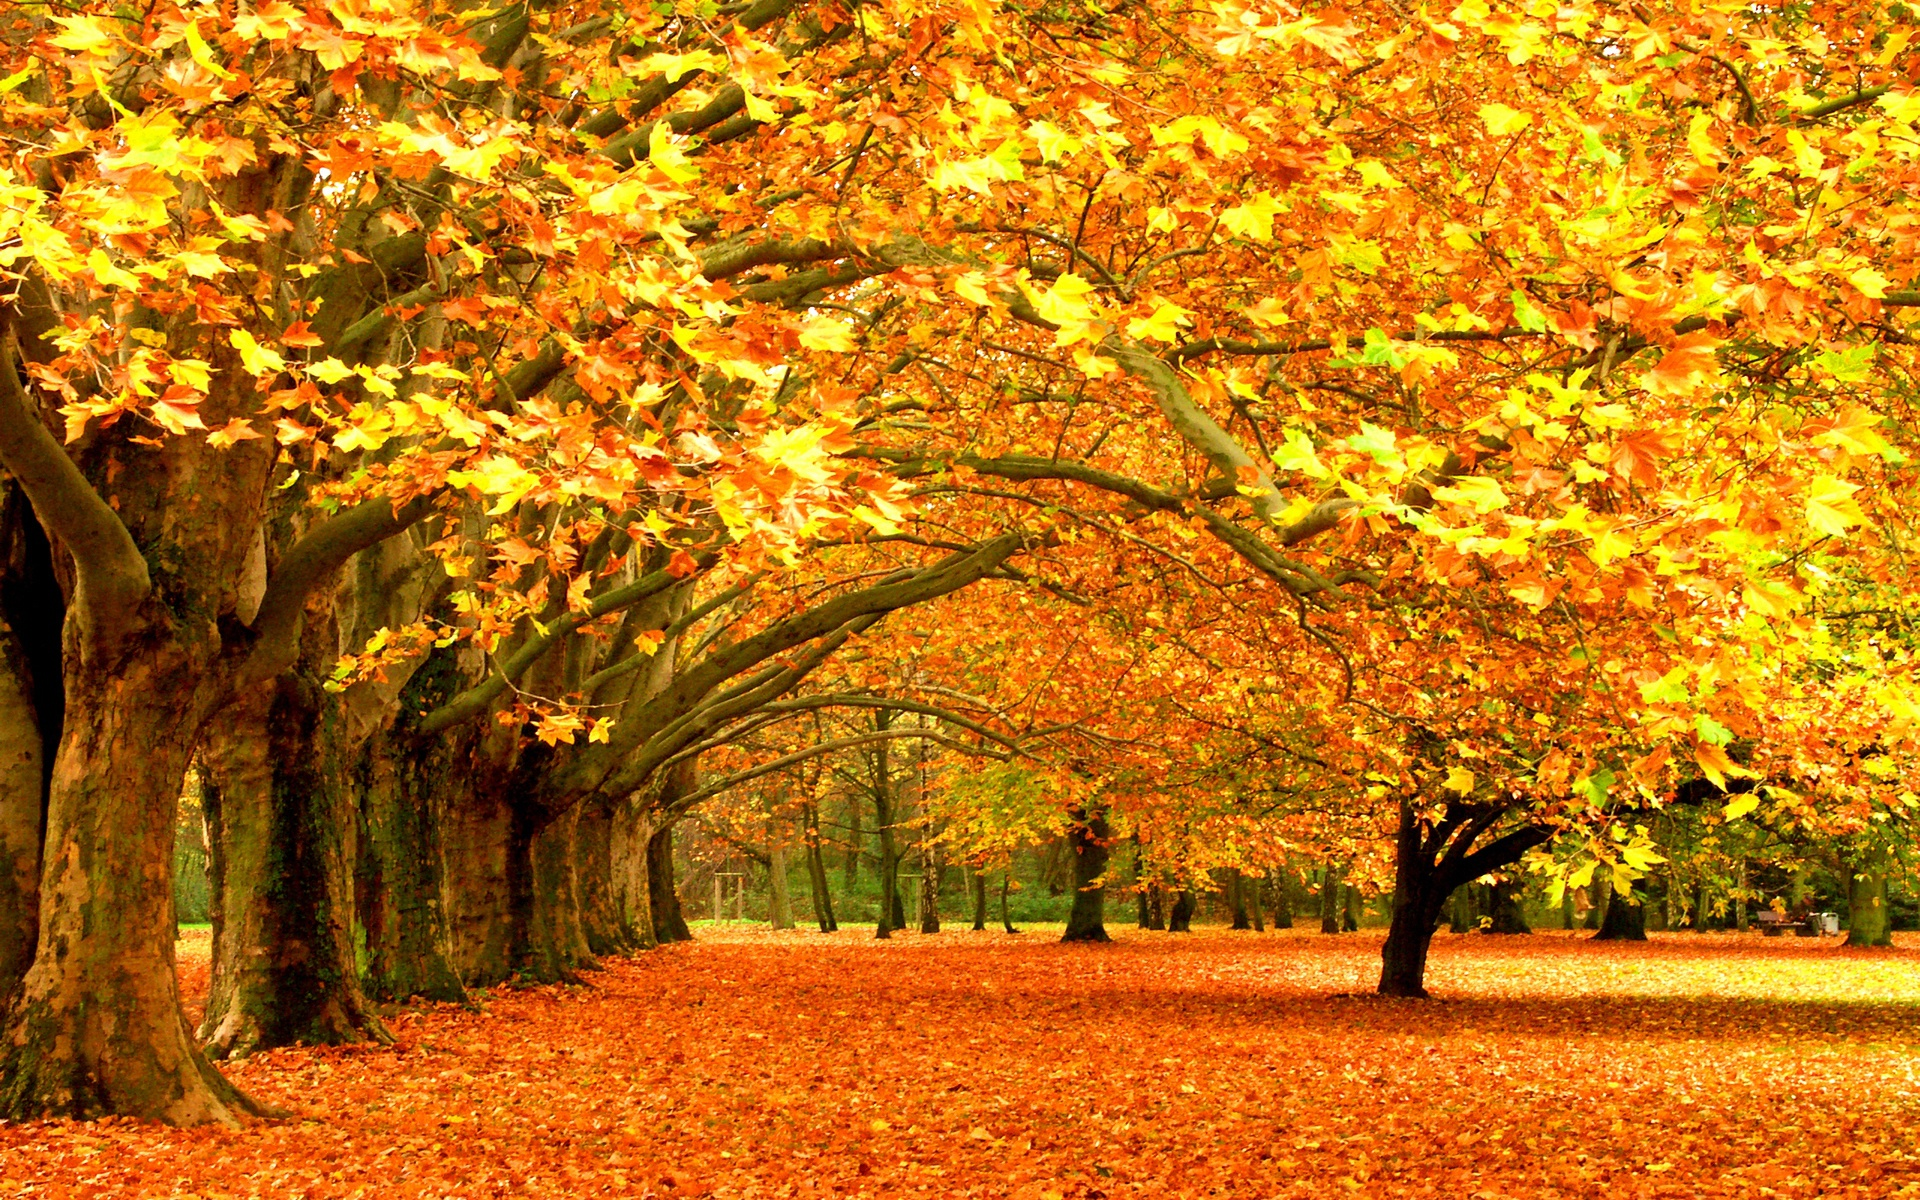 desktop wallpaper for fall season sf wallpaper